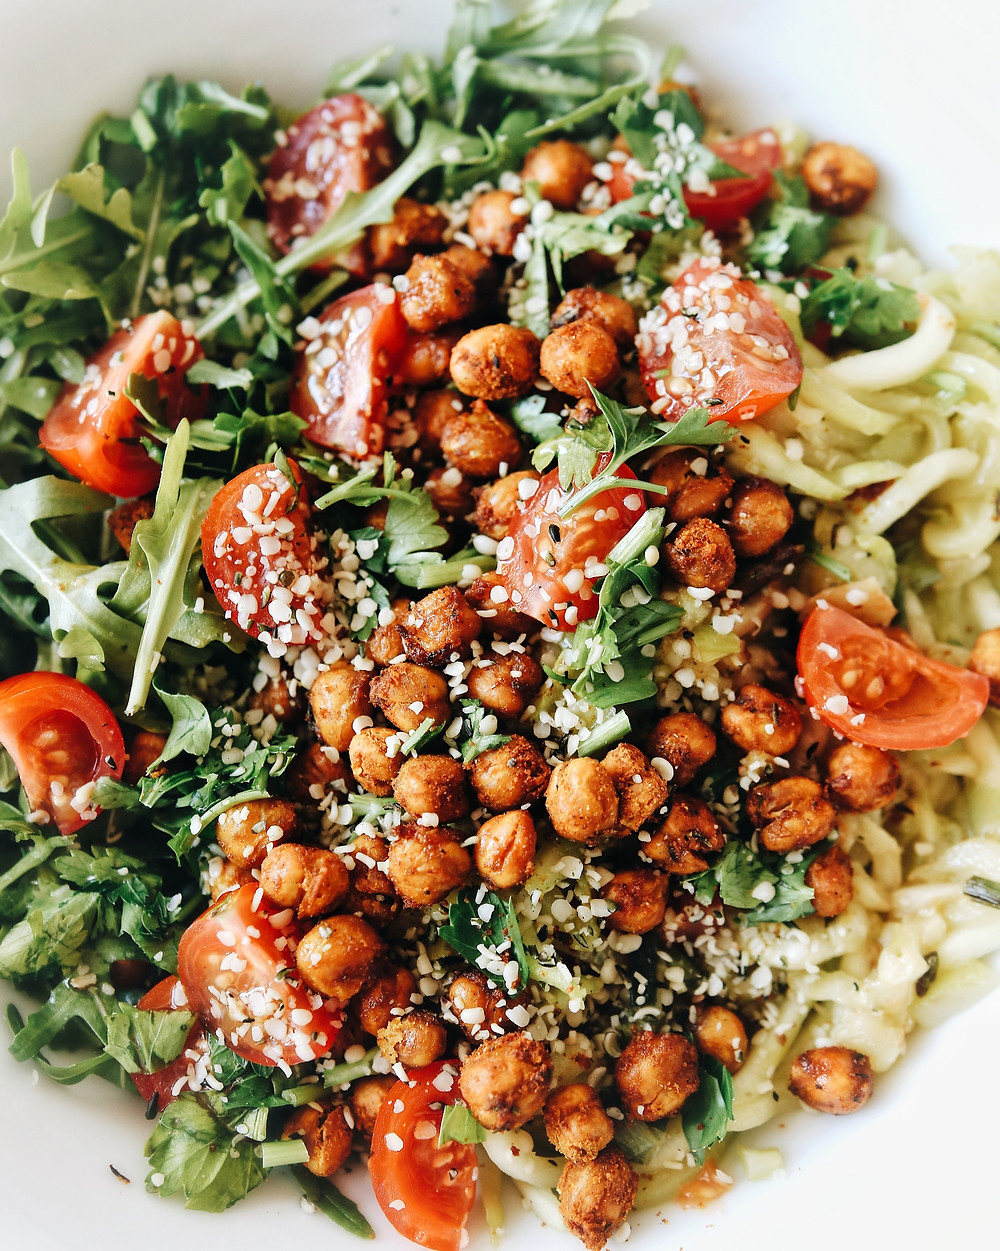 A gluten free zucchini noodle salad with arugula and chickpeas, birdseye view.